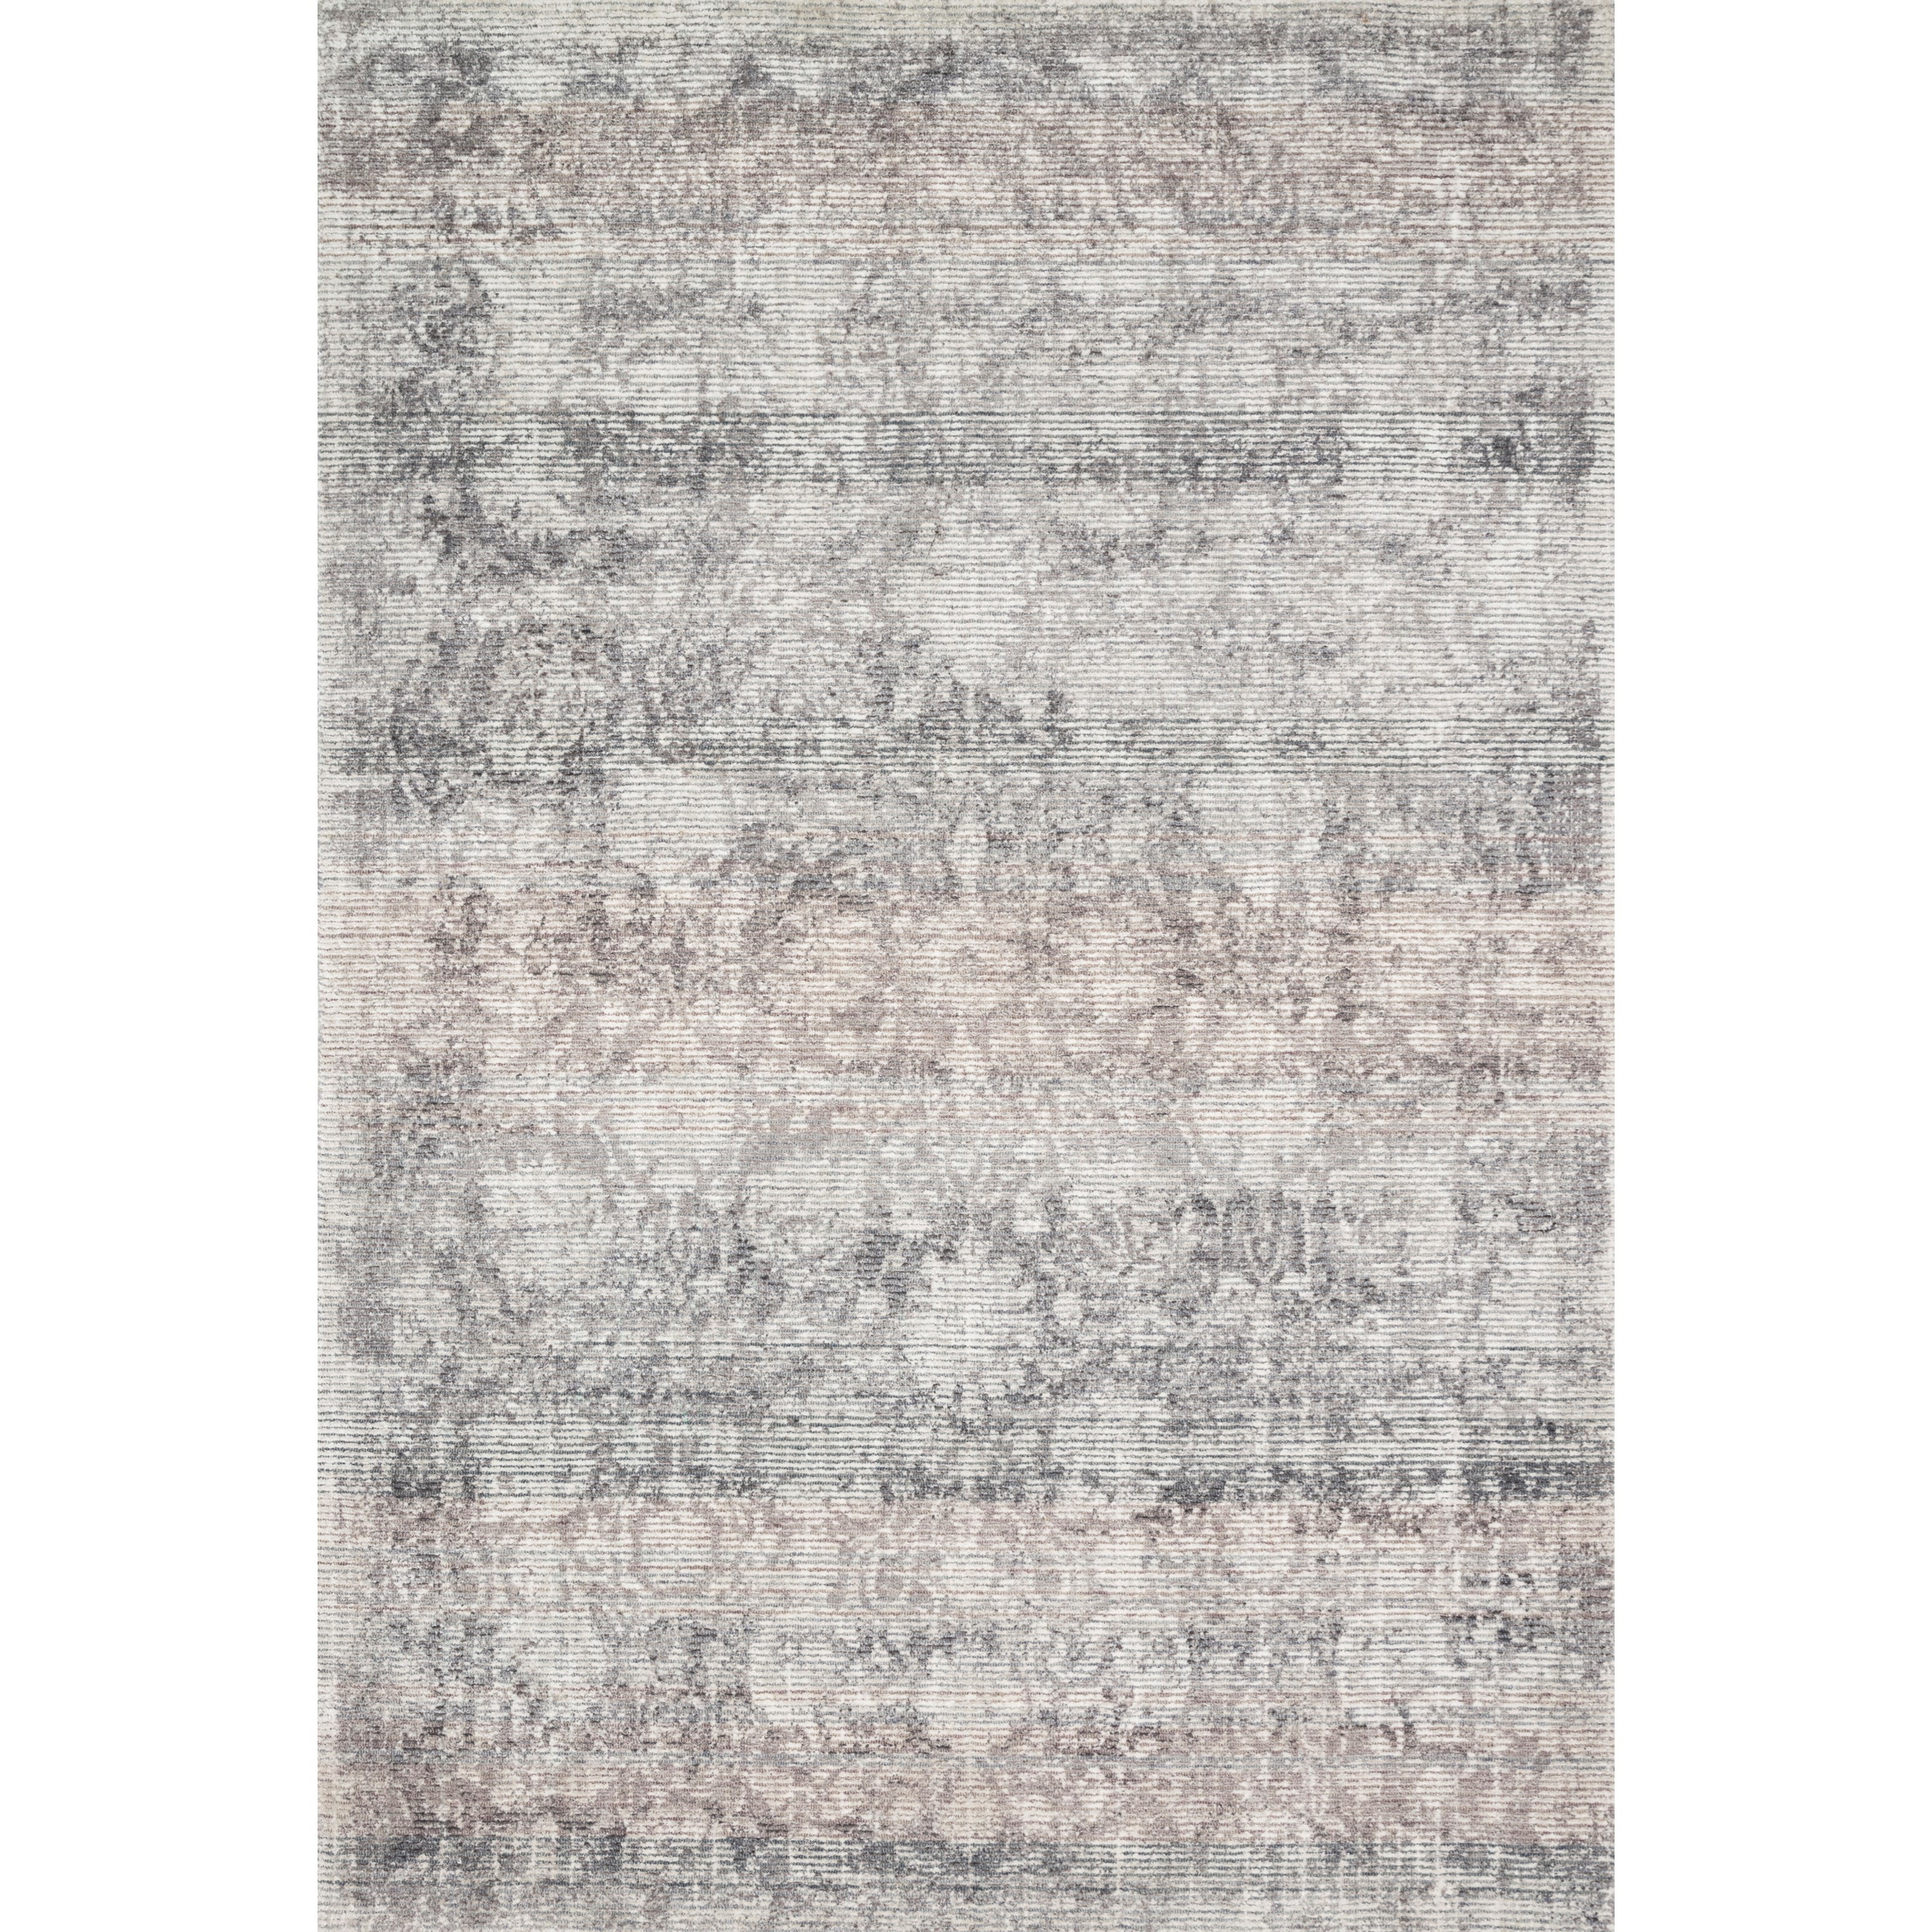 """Rumi 2'6"""" x 9'9"""" Pewter Rug by Loloi Rugs at Virginia Furniture Market"""